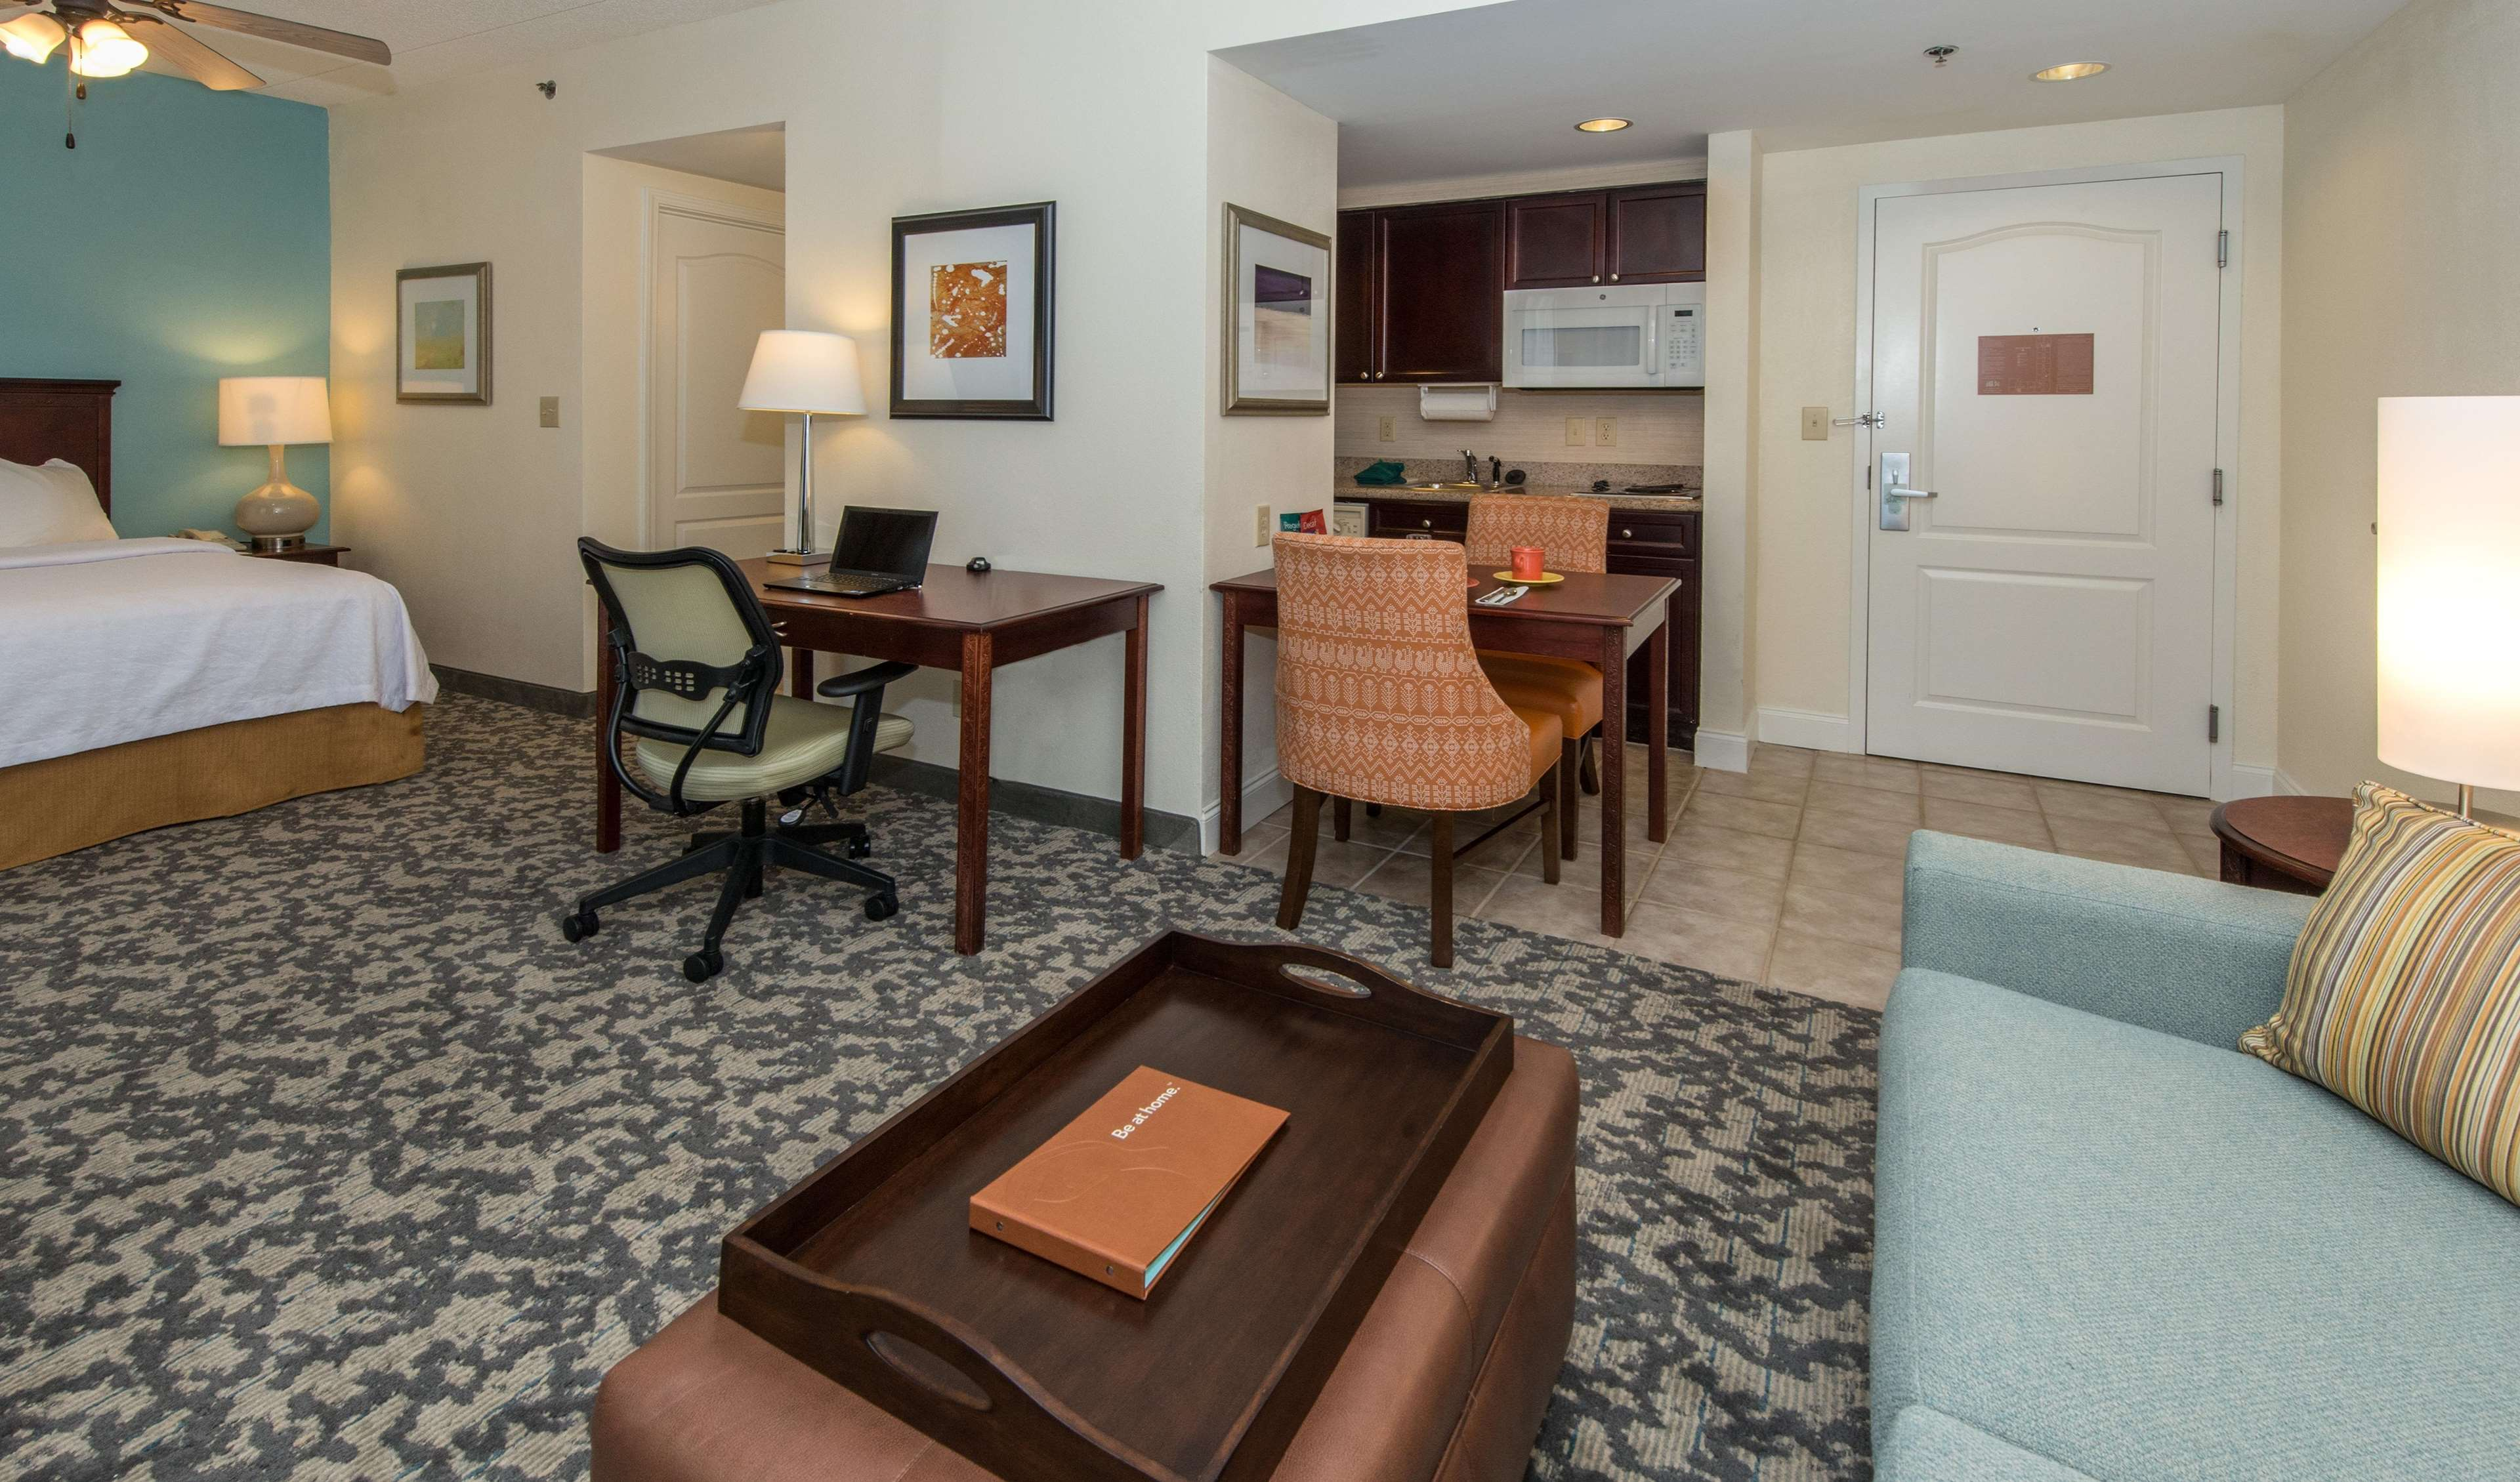 Homewood Suites by Hilton Montgomery image 21